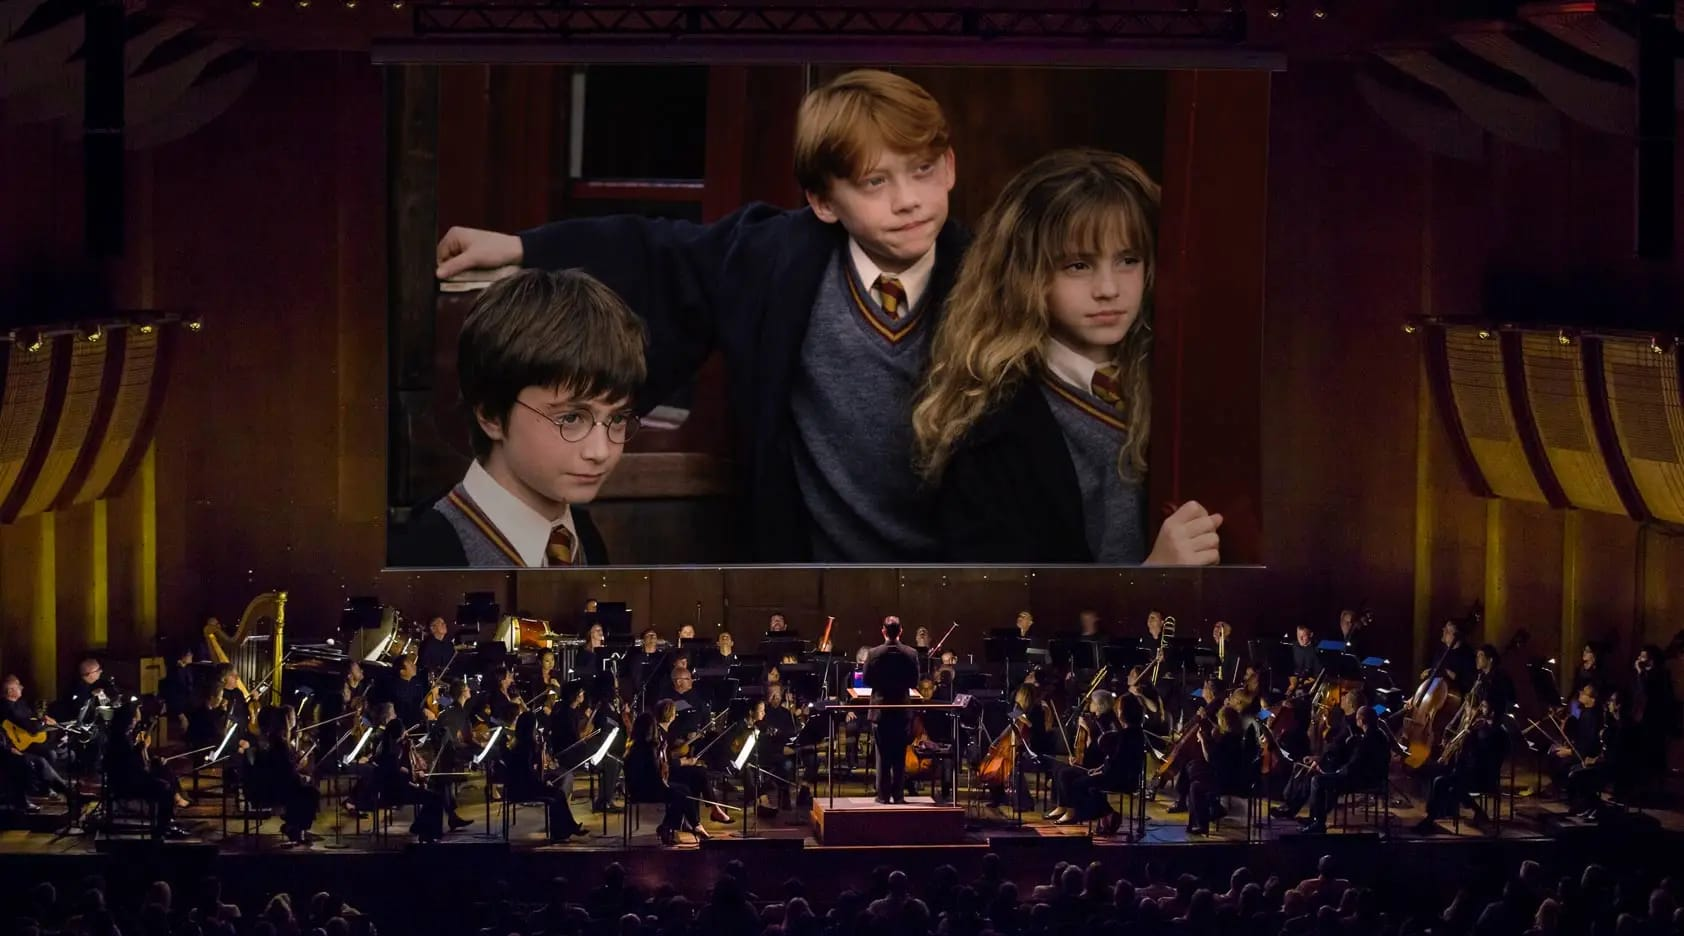 The New York Philharmonic performs Harry Potter and the Sorcerer's Stone™ in Concert